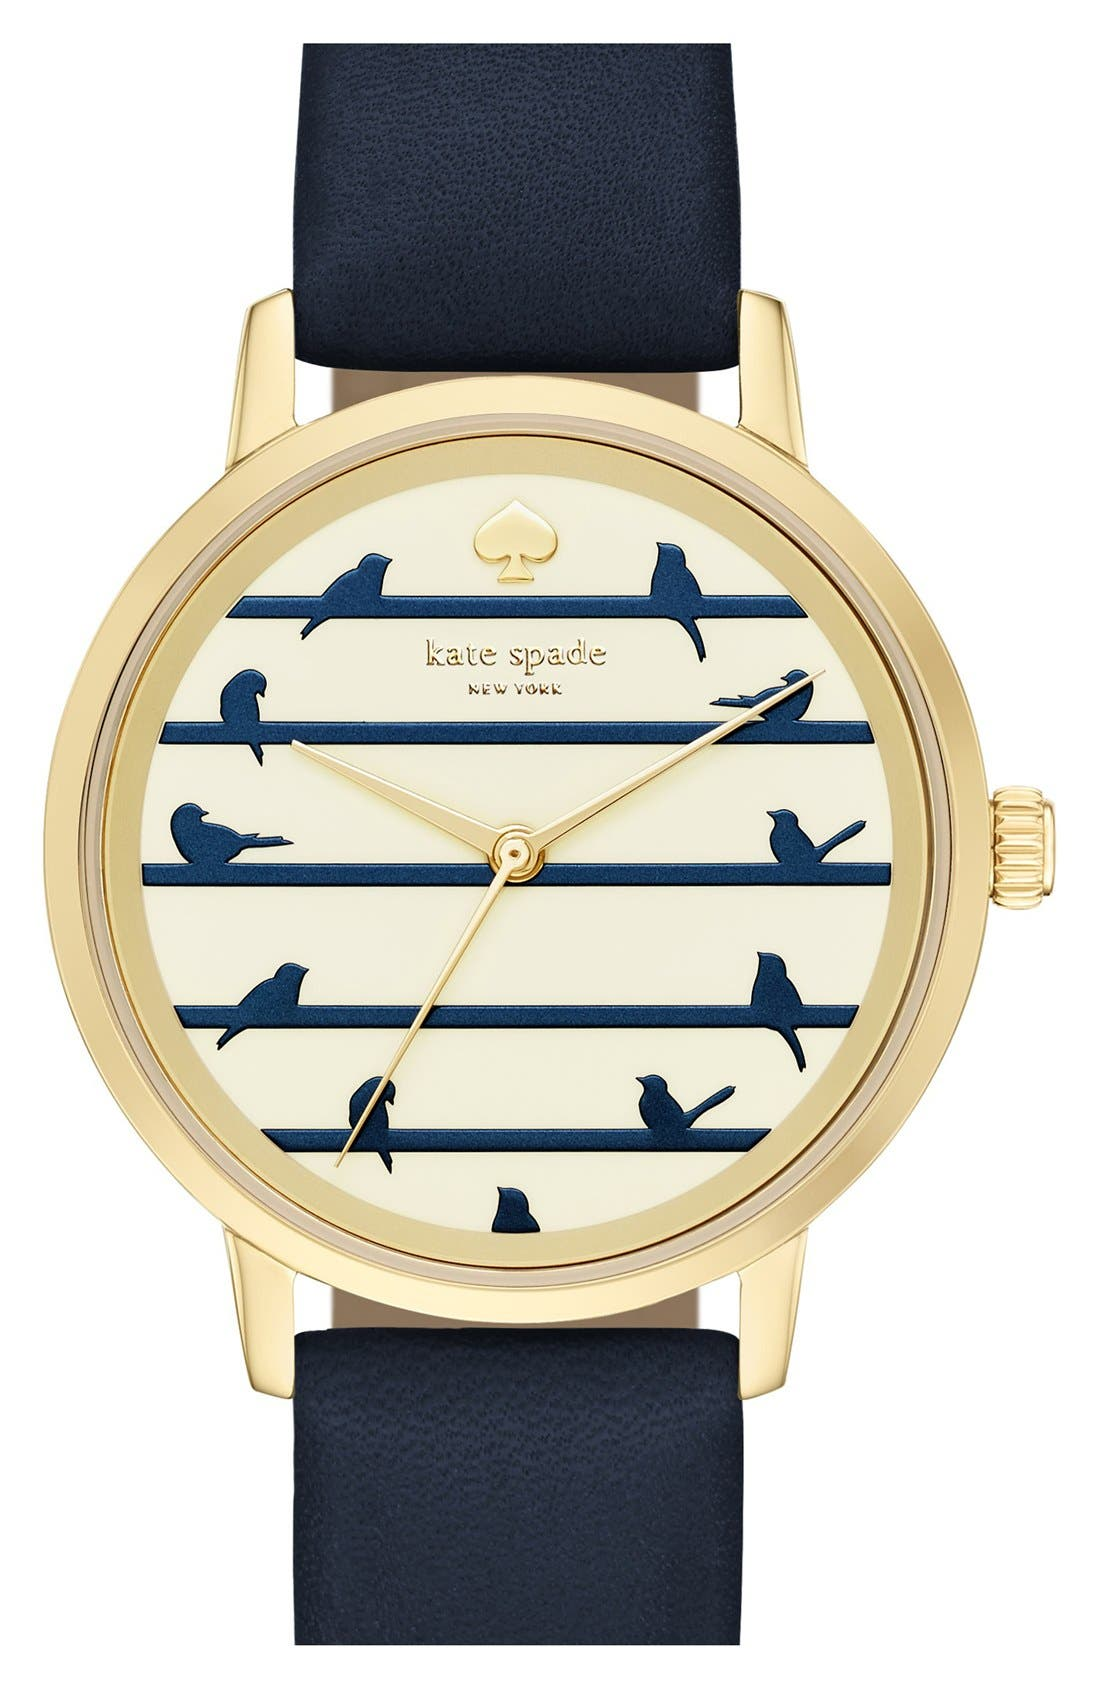 KATE SPADE NEW YORK 'birds on a wire